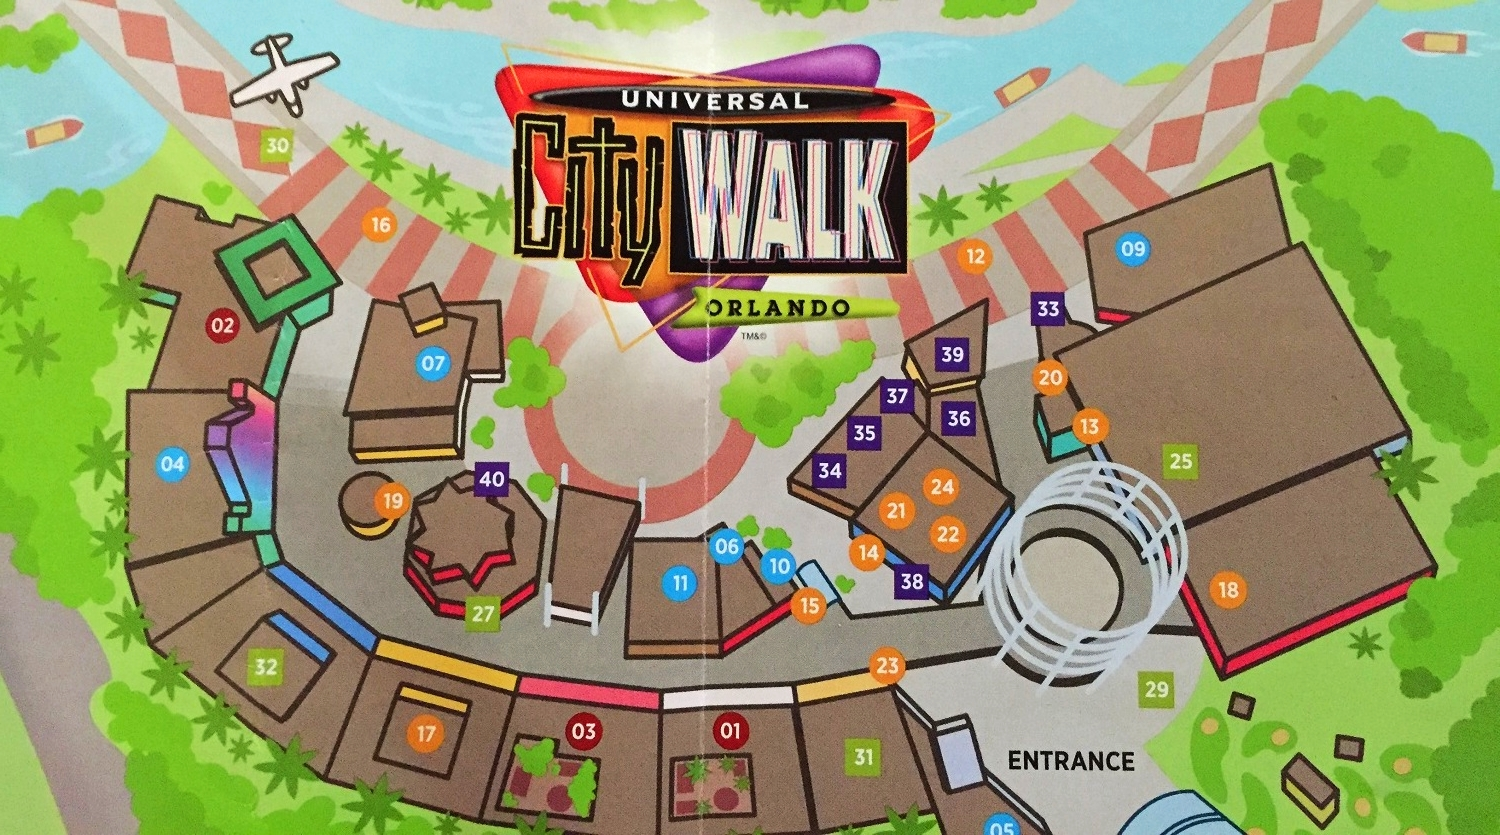 Cinnabon is number 14 on this Universal CityWalk map.